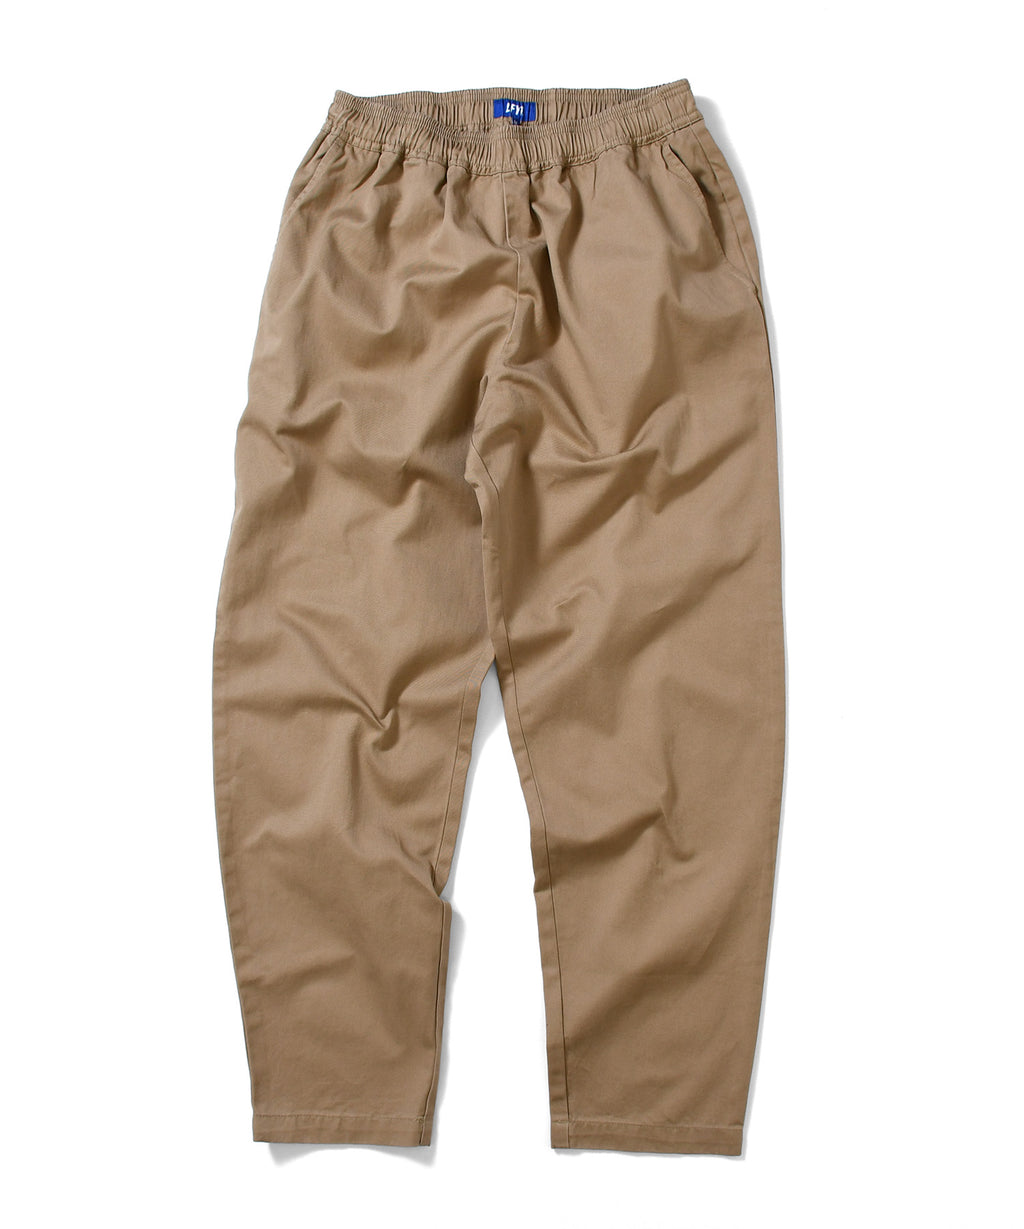 RELAXED FIT CHEF PANTS BEIGE LA201204